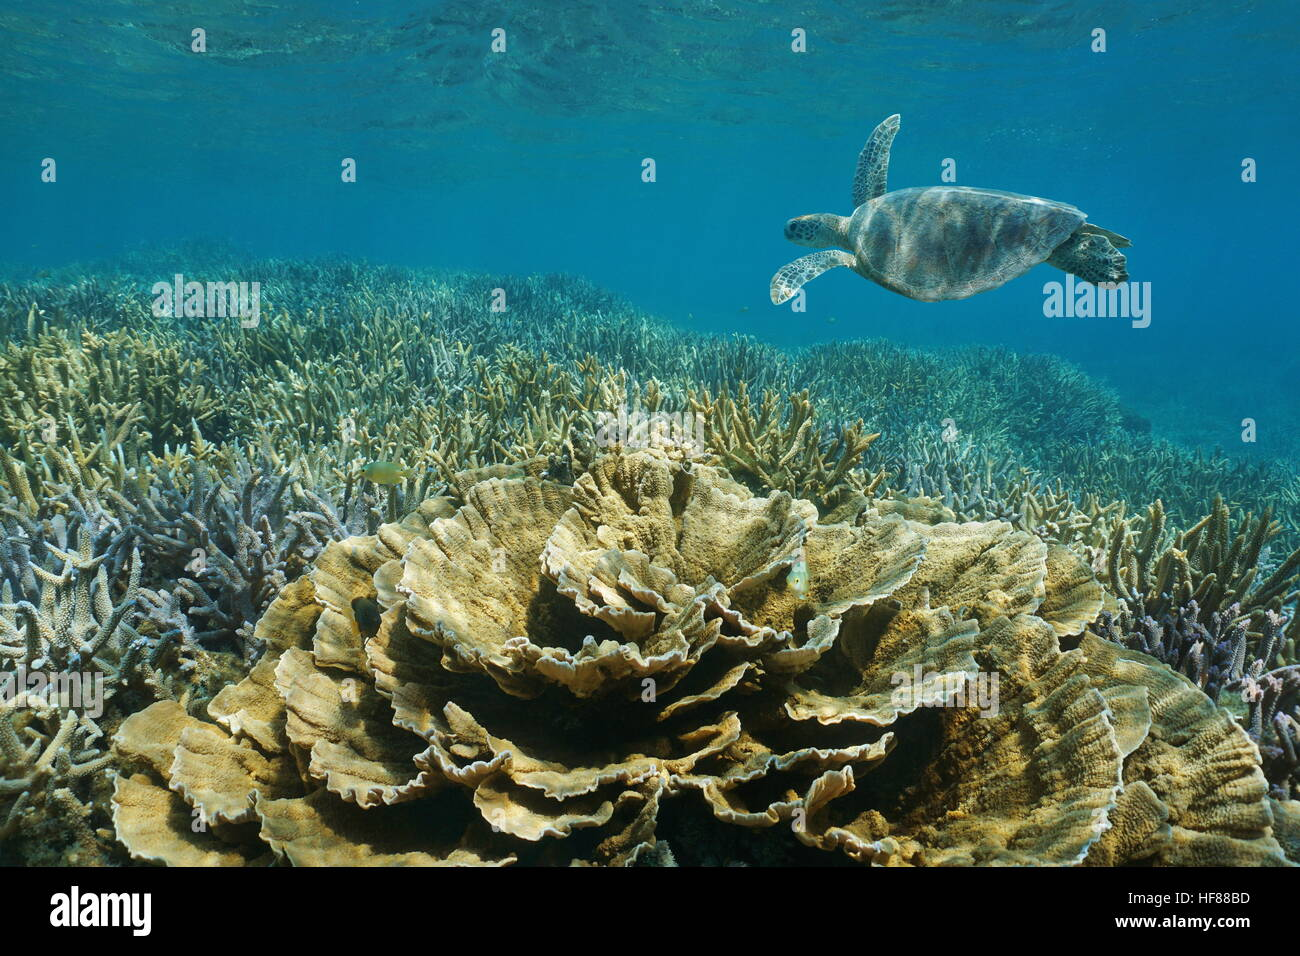 Pacific ocean underwater shallow reef with a green sea turtle, leaf and staghorn corals , New Caledonia - Stock Image